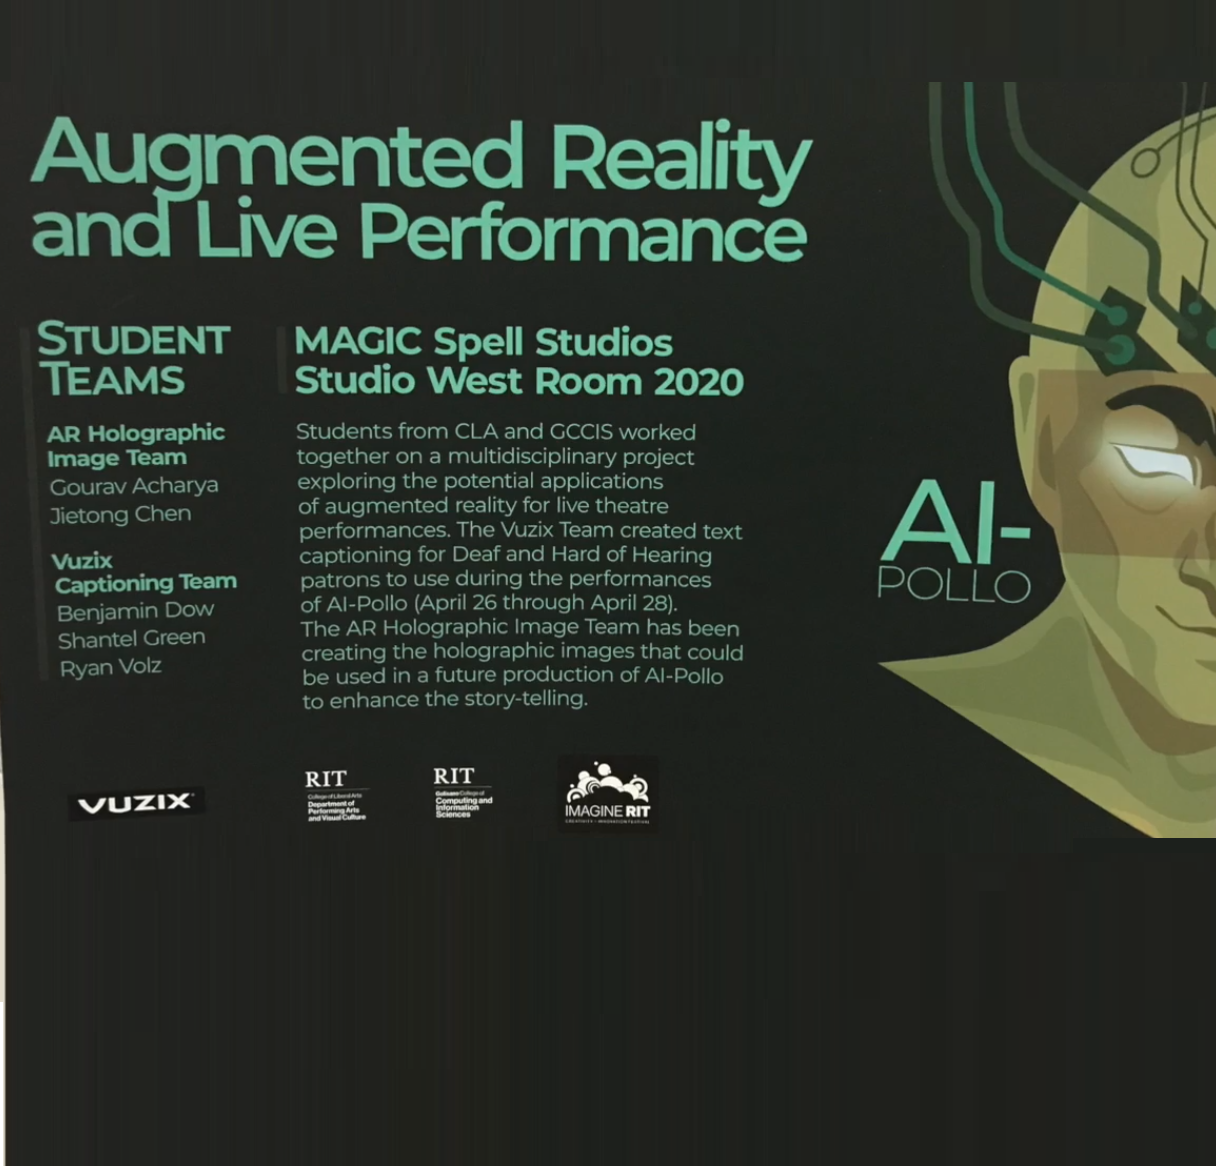 AR Smart Glasses for Live Theater